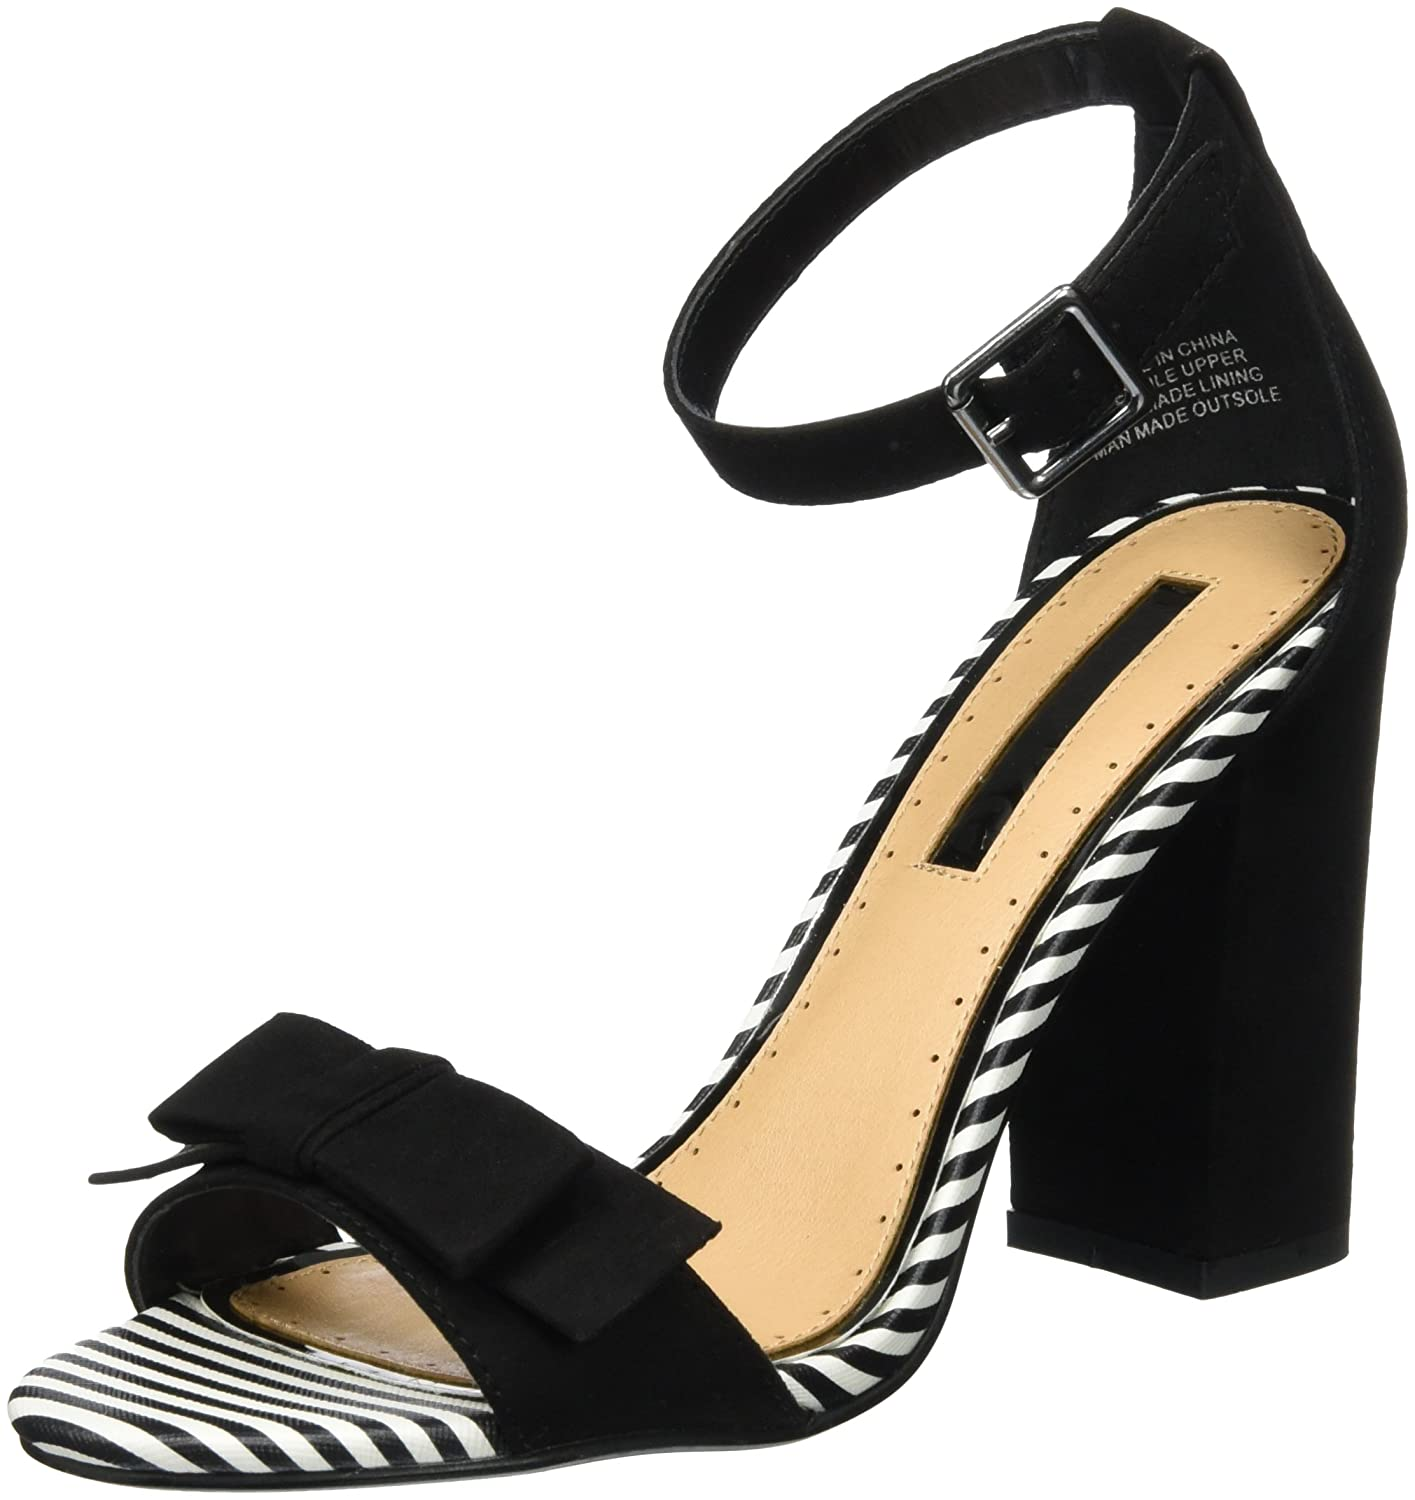 Miss KG Flounce - Tacones Mujer